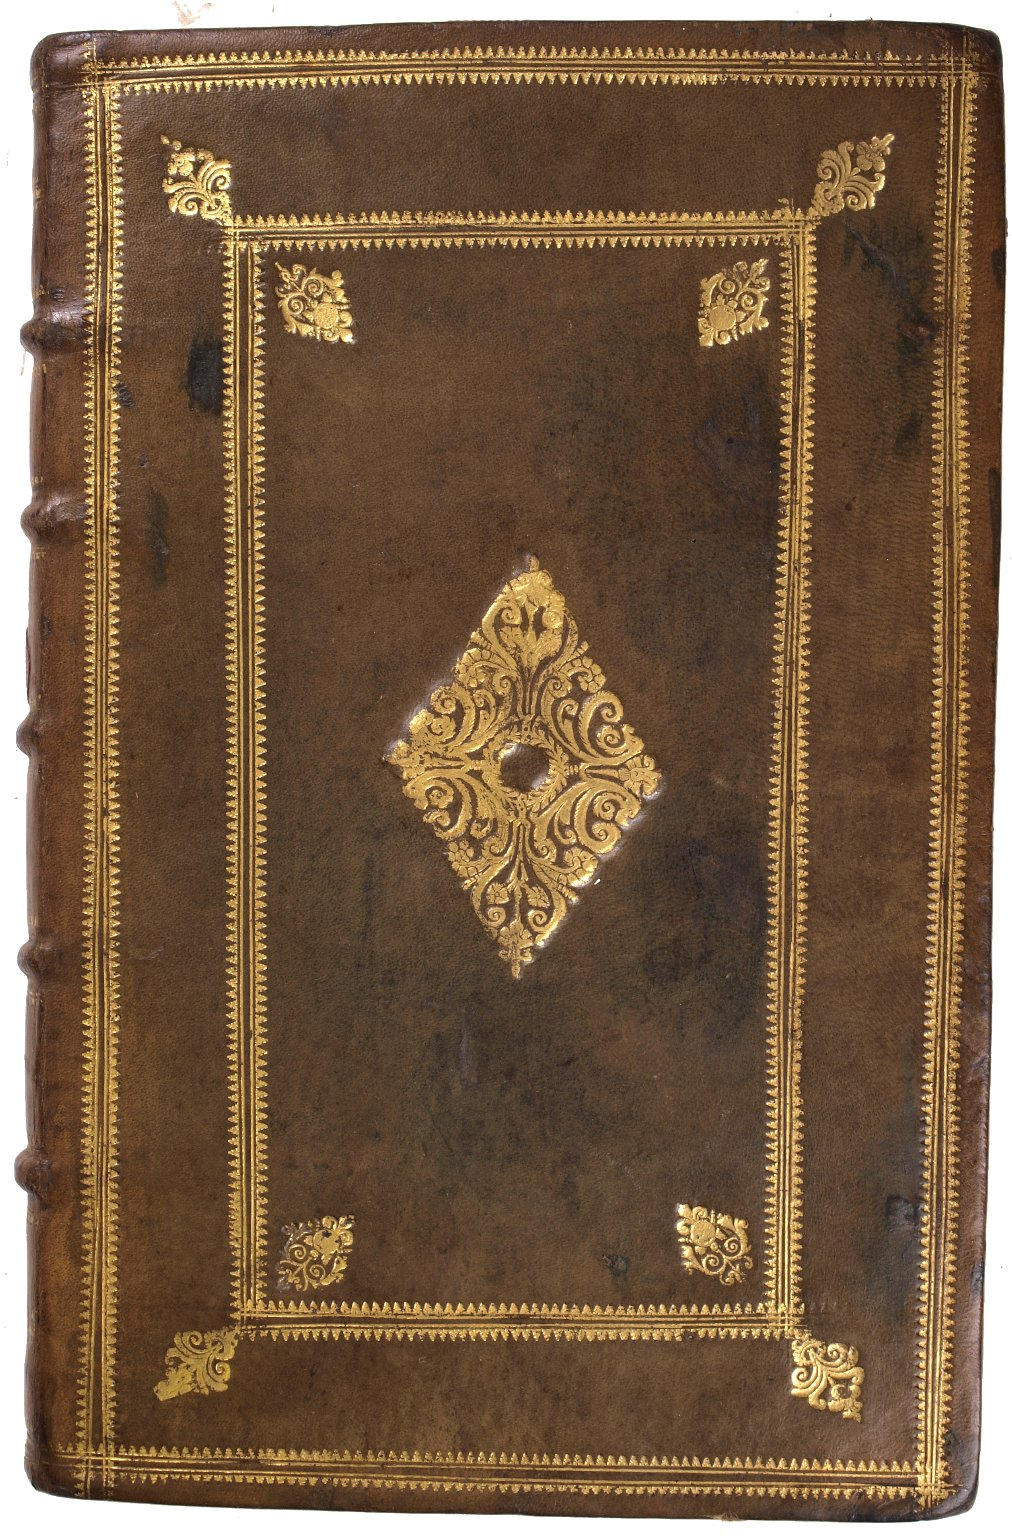 Front cover, STC 18189.